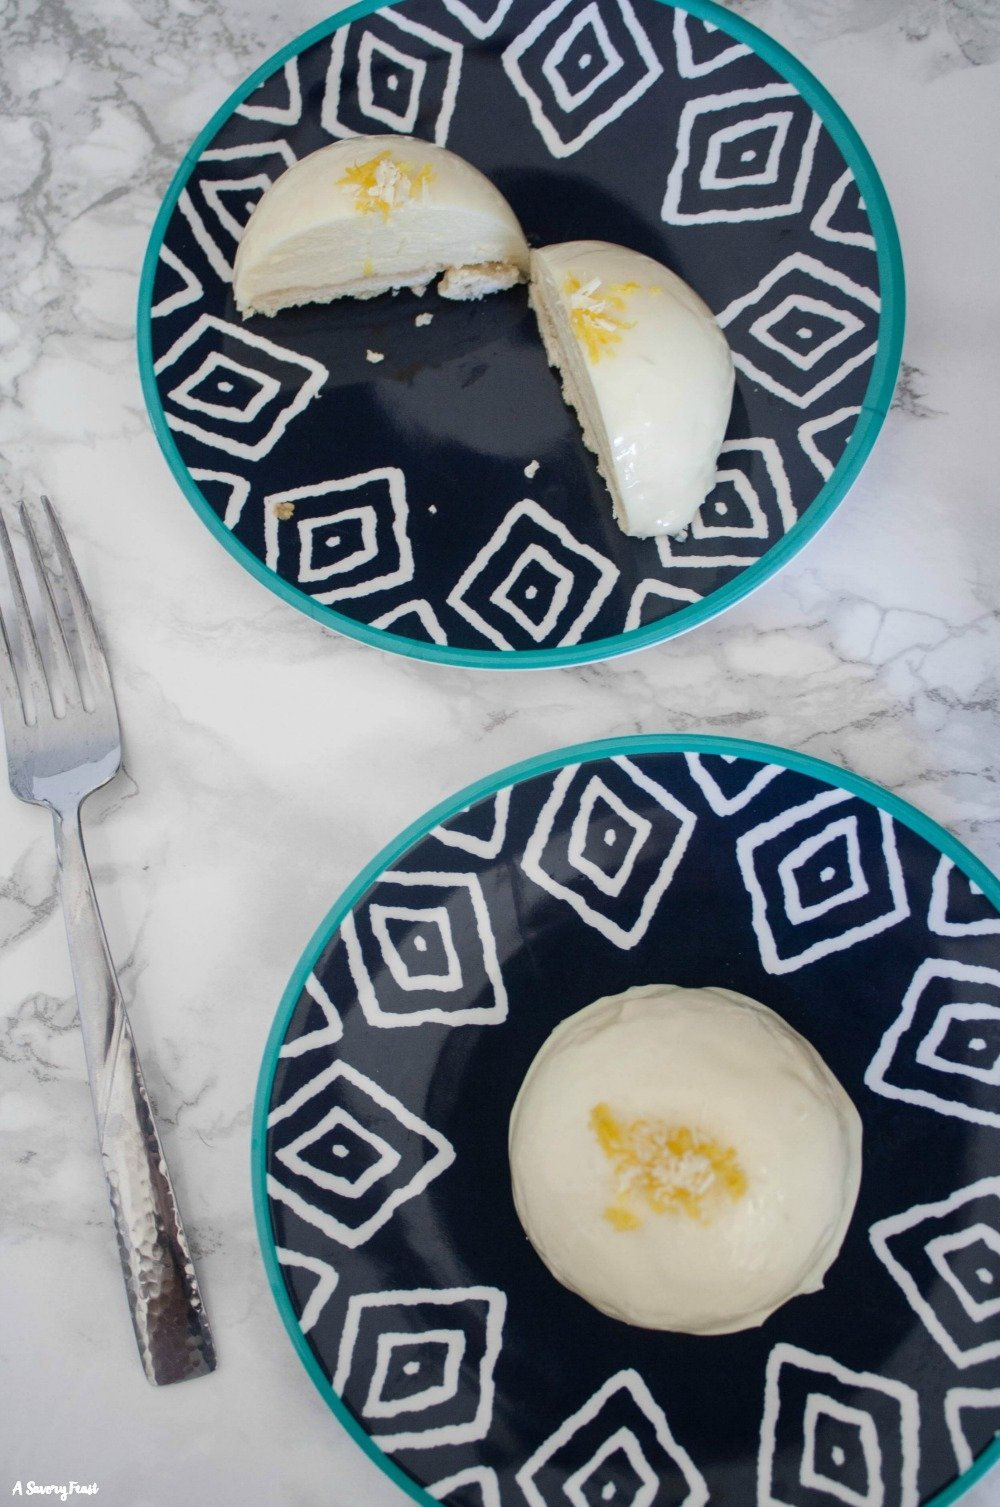 Looking for a show-stopping dessert? Look no further. Lemon Mousse Cakes start with a shortbread crust and a tart lemon mousse, topped off with a white chocolate mirror glaze.